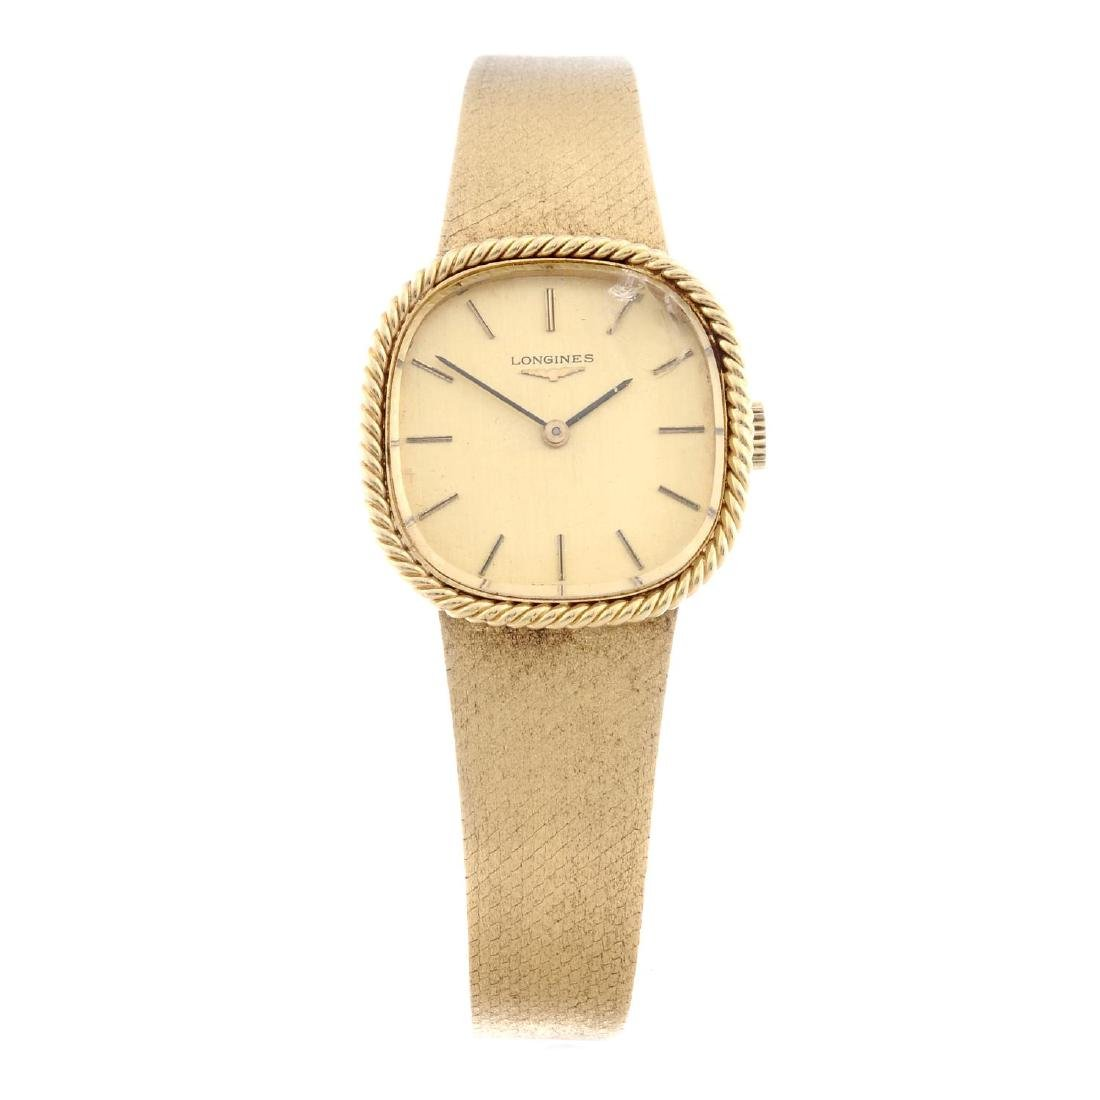 LONGINES - a lady's bracelet watch. Yellow metal case,